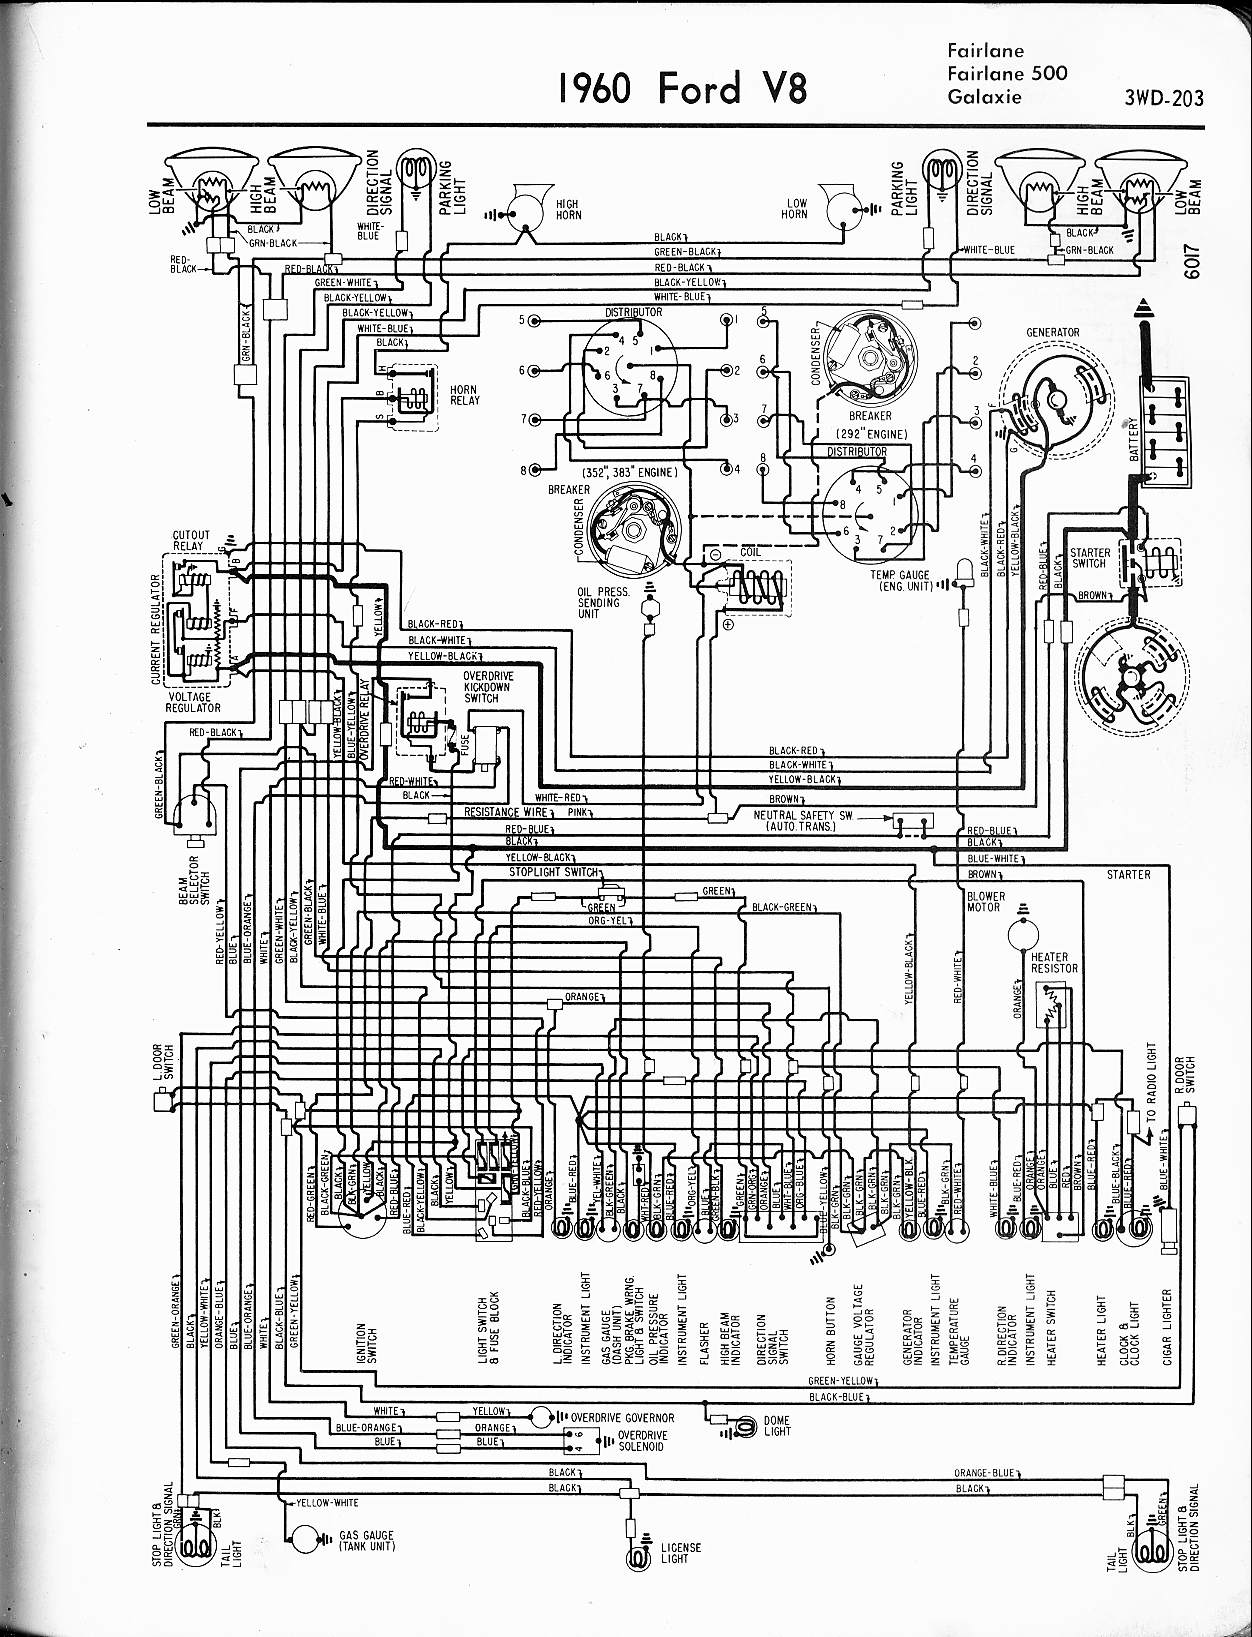 MWire5765 203 57 65 ford wiring diagrams 1960 ford f100 wiring diagram at bayanpartner.co